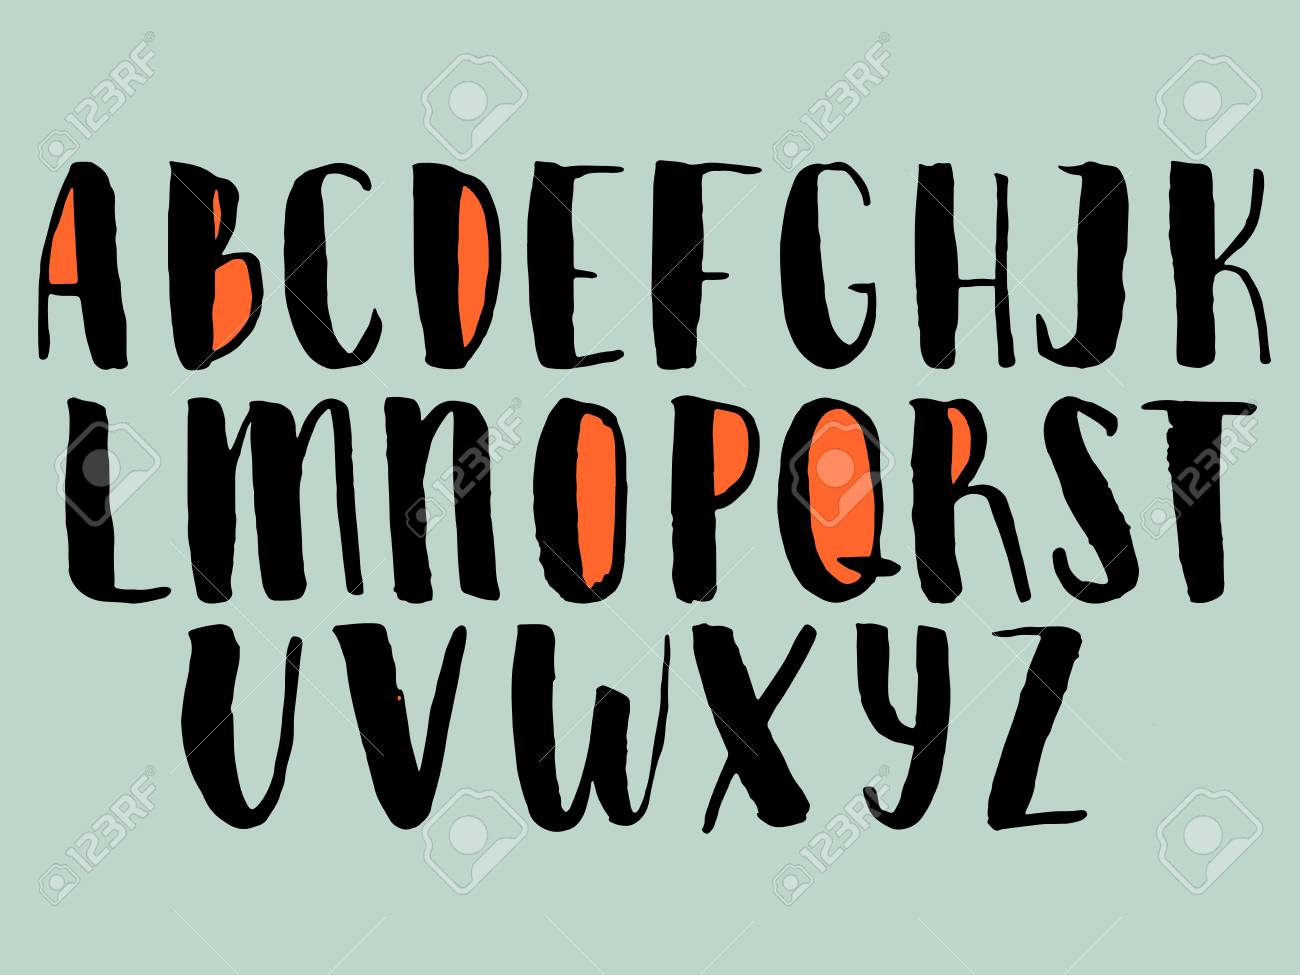 Alphabet calligraphy letters letters of the alphabet written